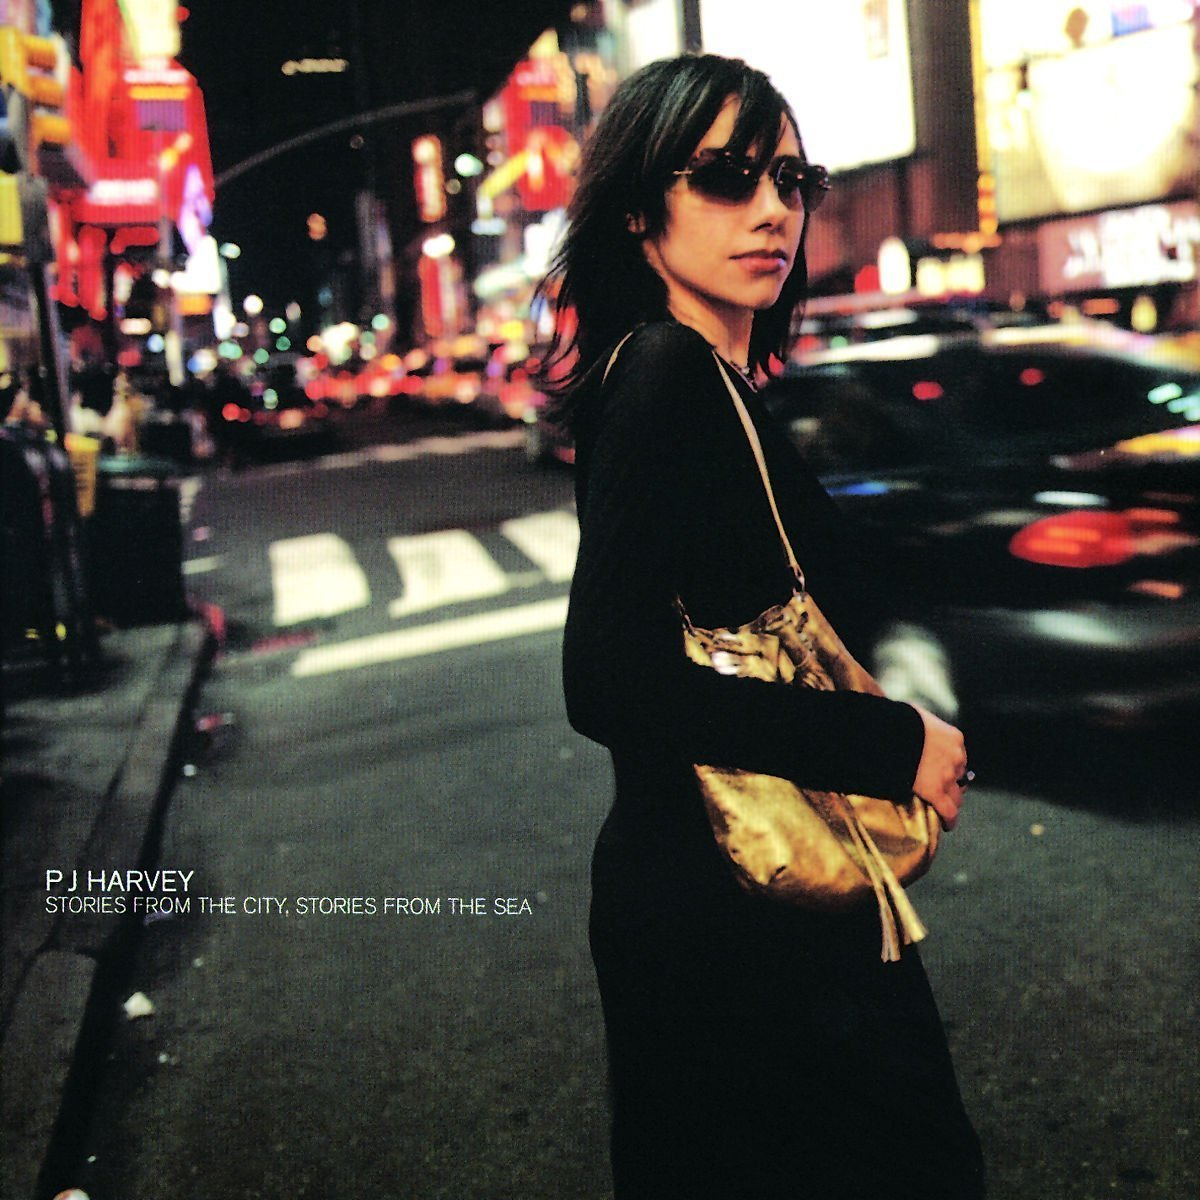 PJ Harvey, Stories from the City, Stories from the Sea